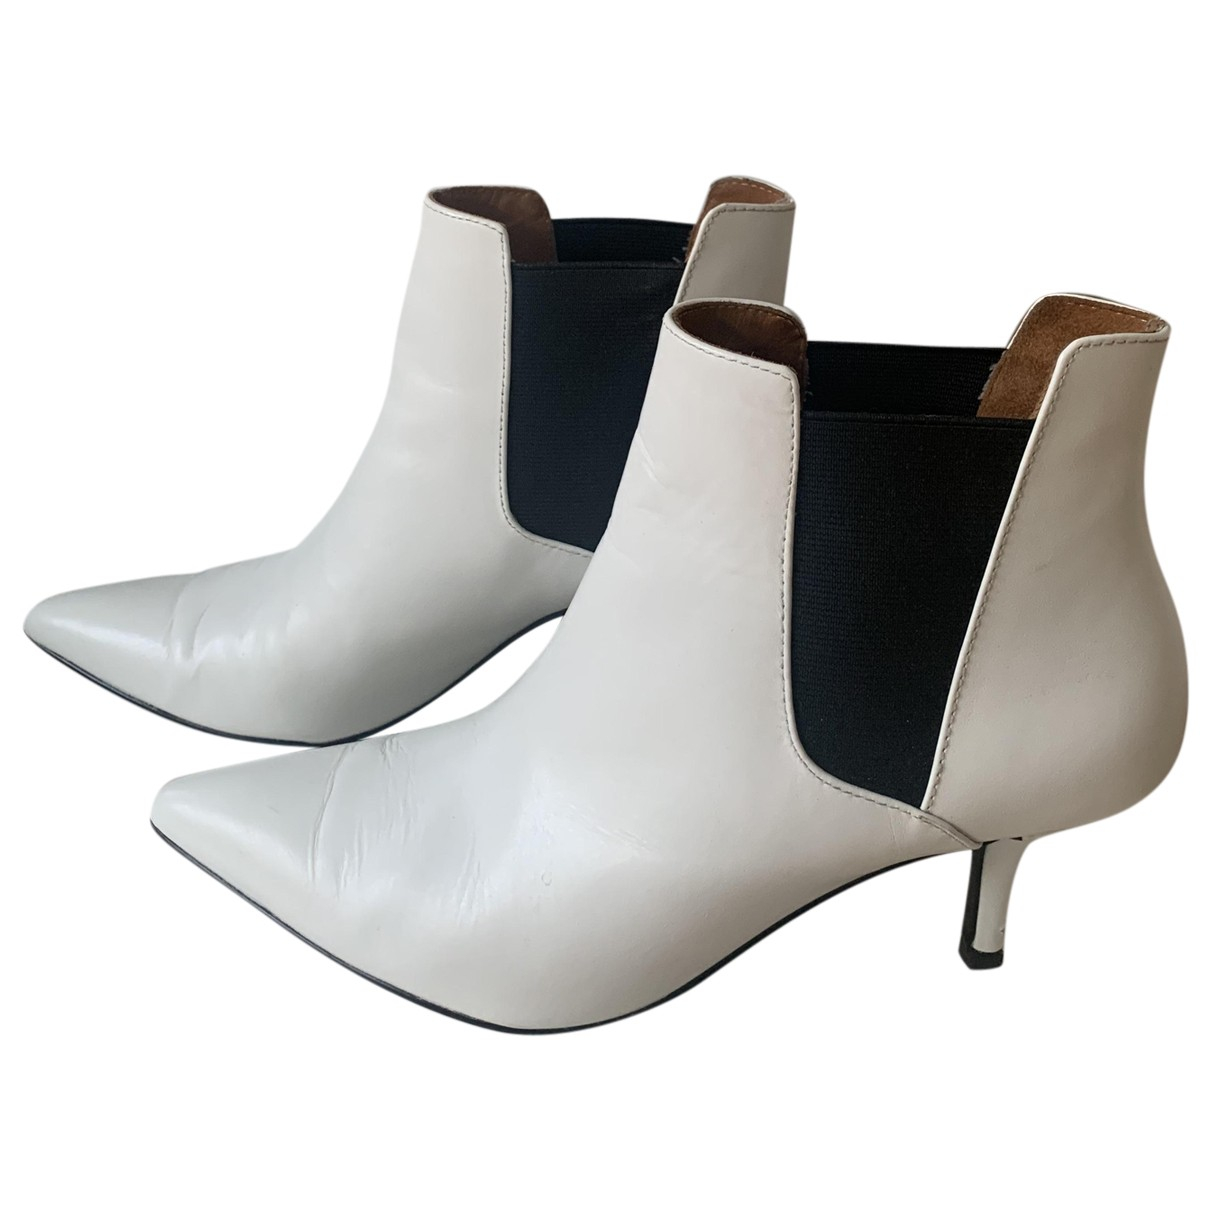 & Stories \N White Leather Boots for Women 37 EU